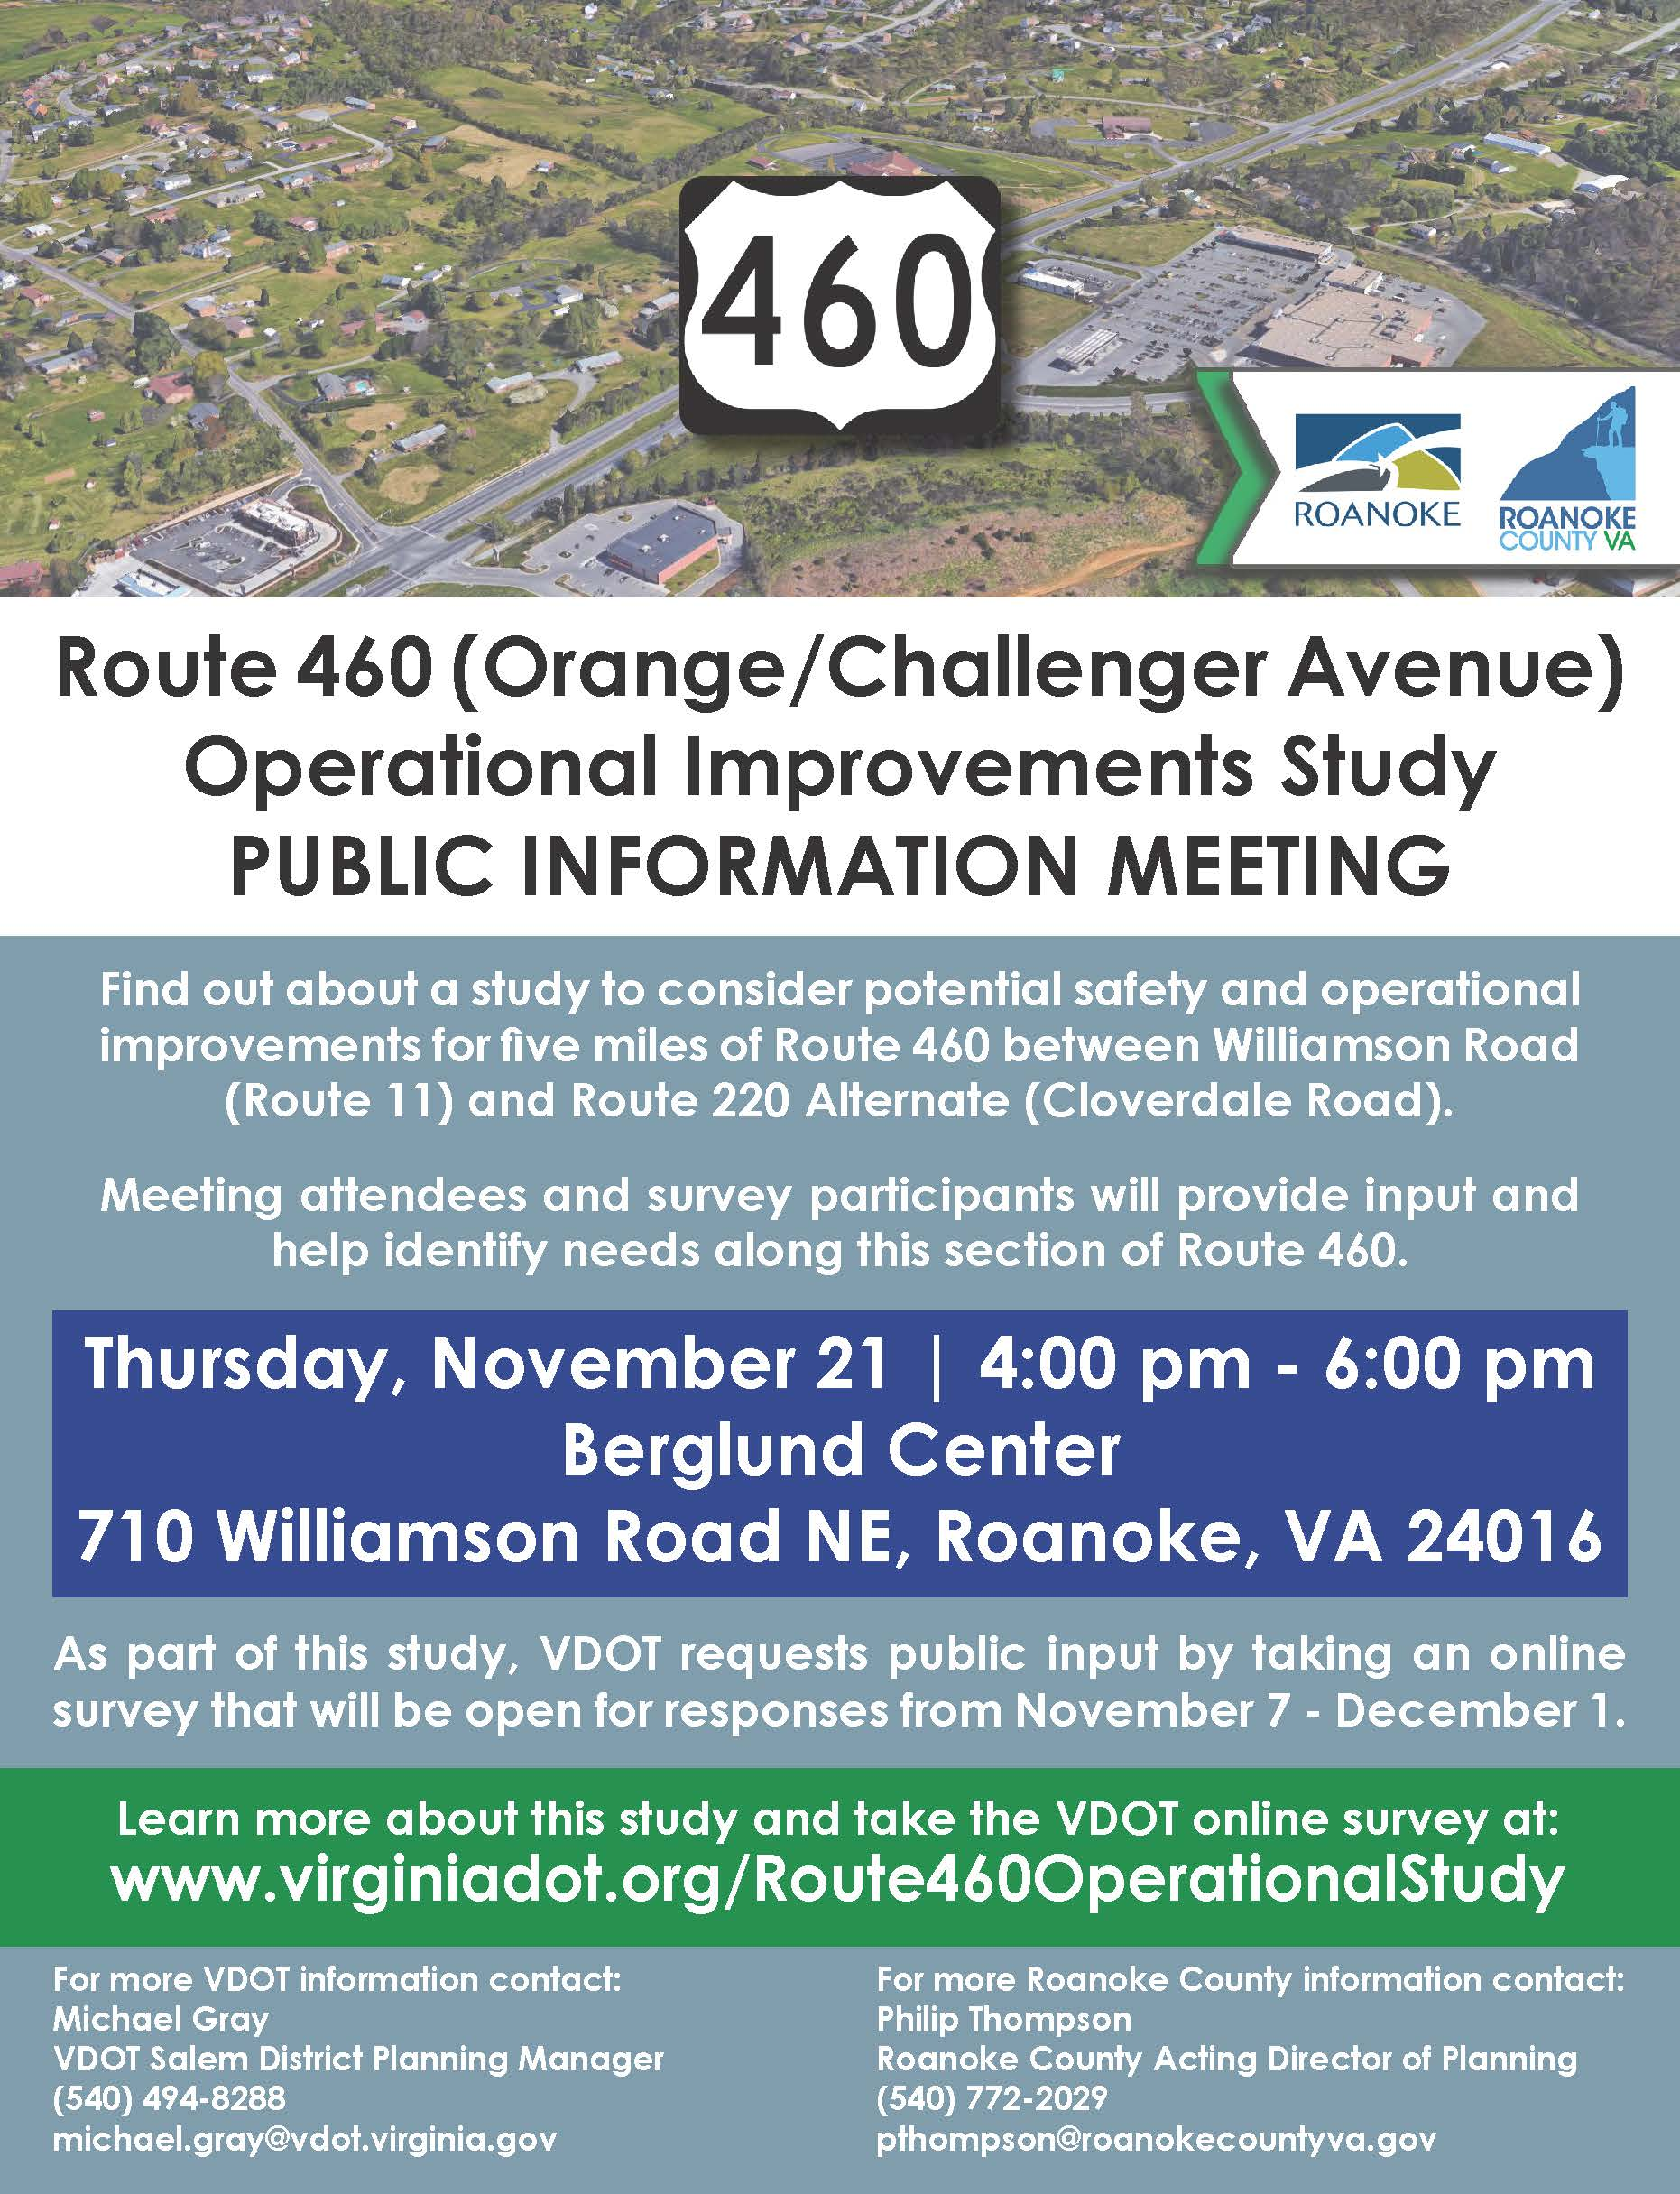 Final Route 460 Operational Improvements Study Public Information Meeting Mailer